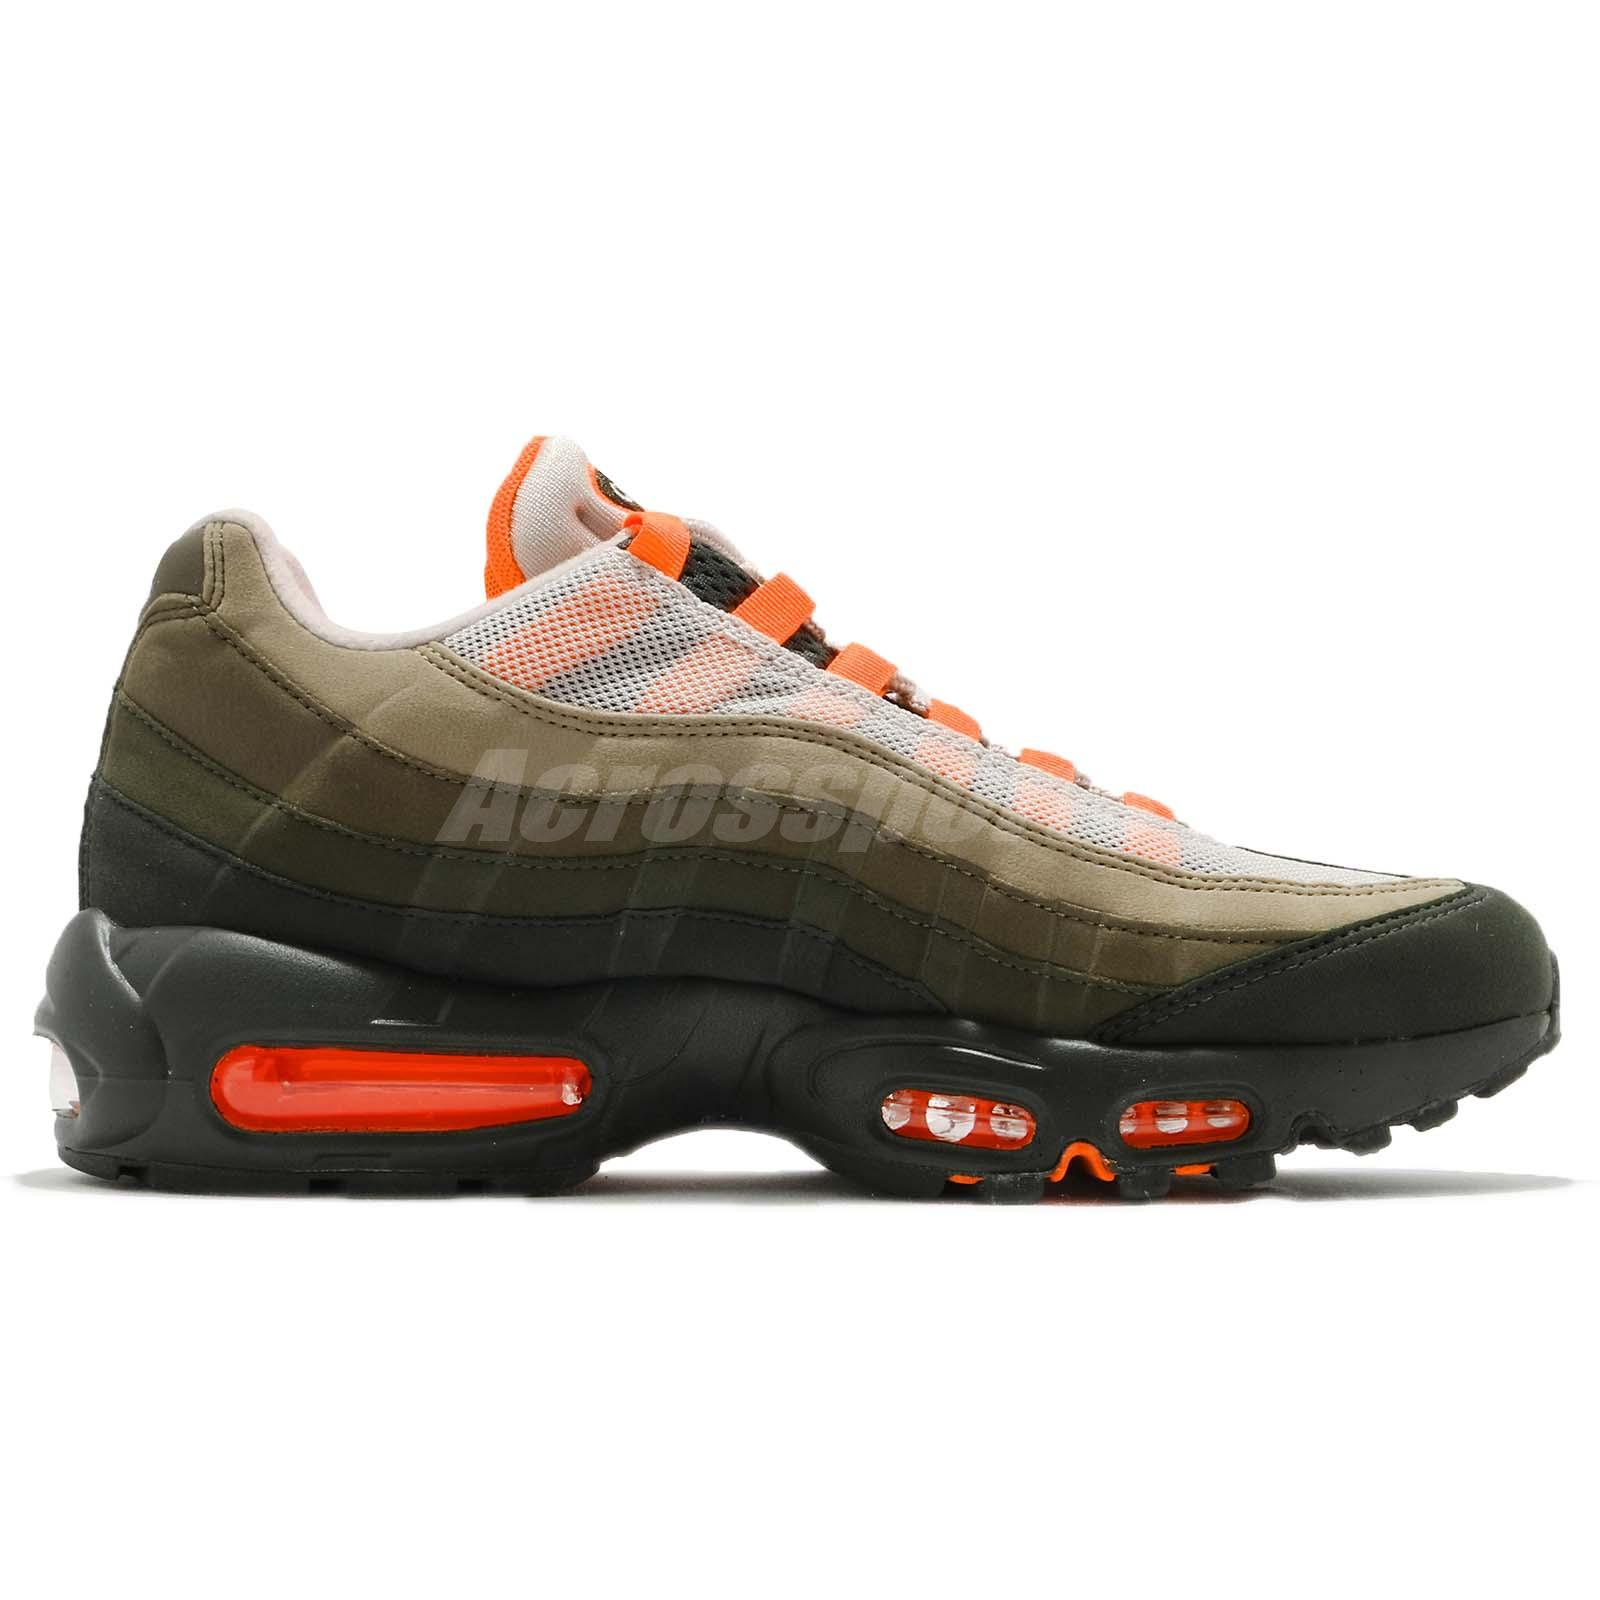 6042a99ded Nike Air Max 95 OG String Green Total Orange Neutral Olive NSW Shoes ...